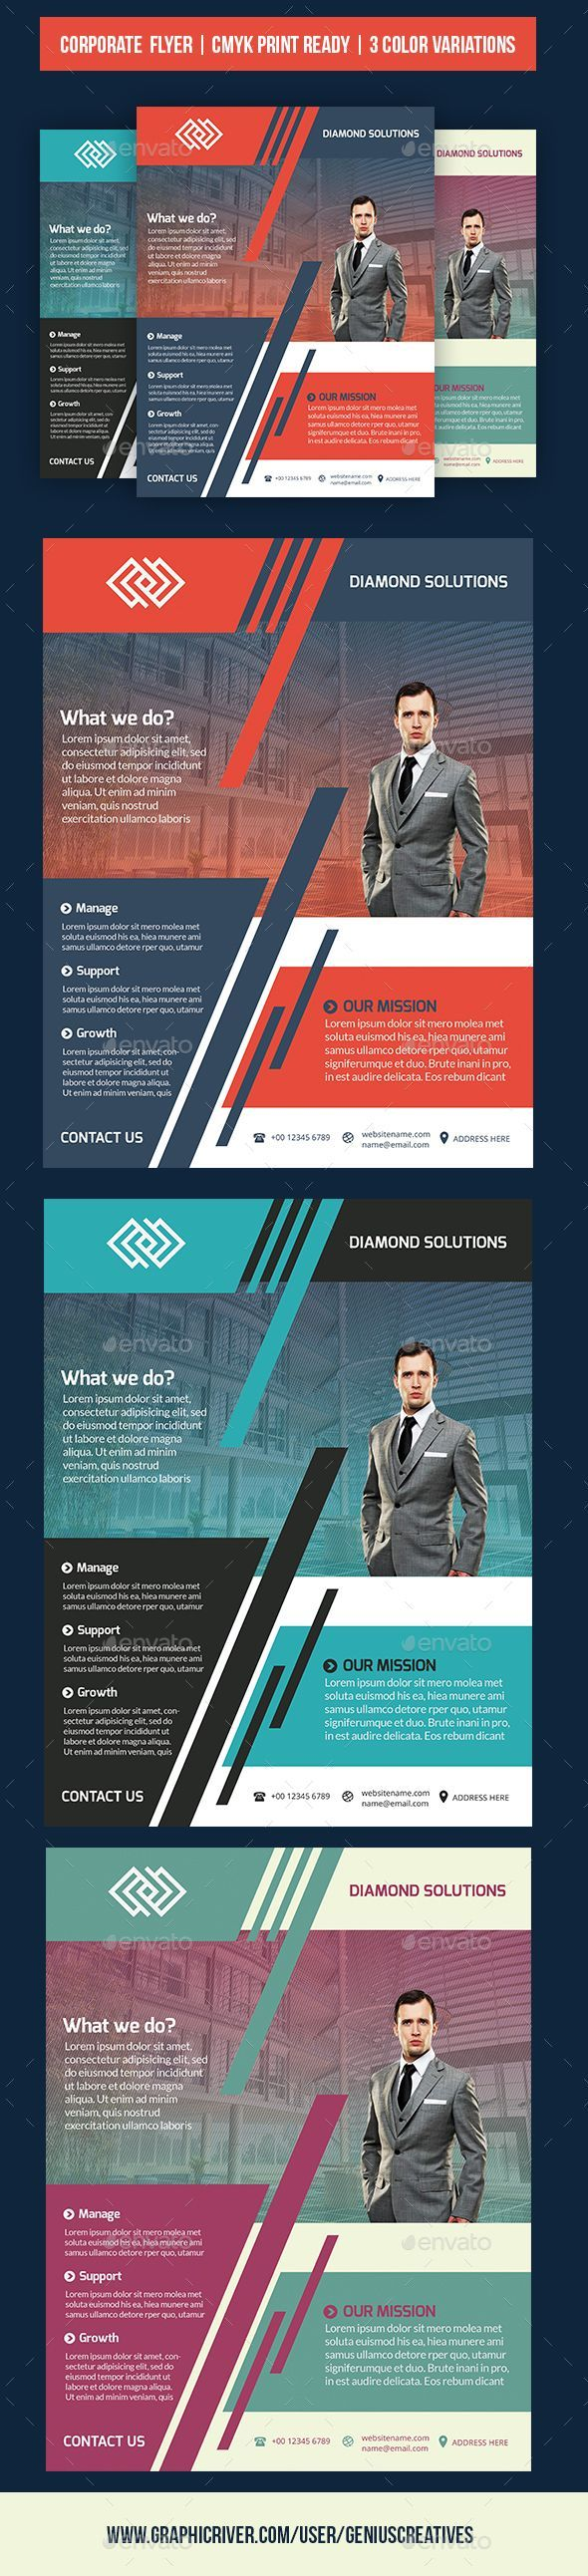 Corporate business flyer by geniuscreatives corporatebusiness flyer corporate business flyer by geniuscreatives corporatebusiness flyer template nice vivid design with a great layout for small businesses startups flashek Images